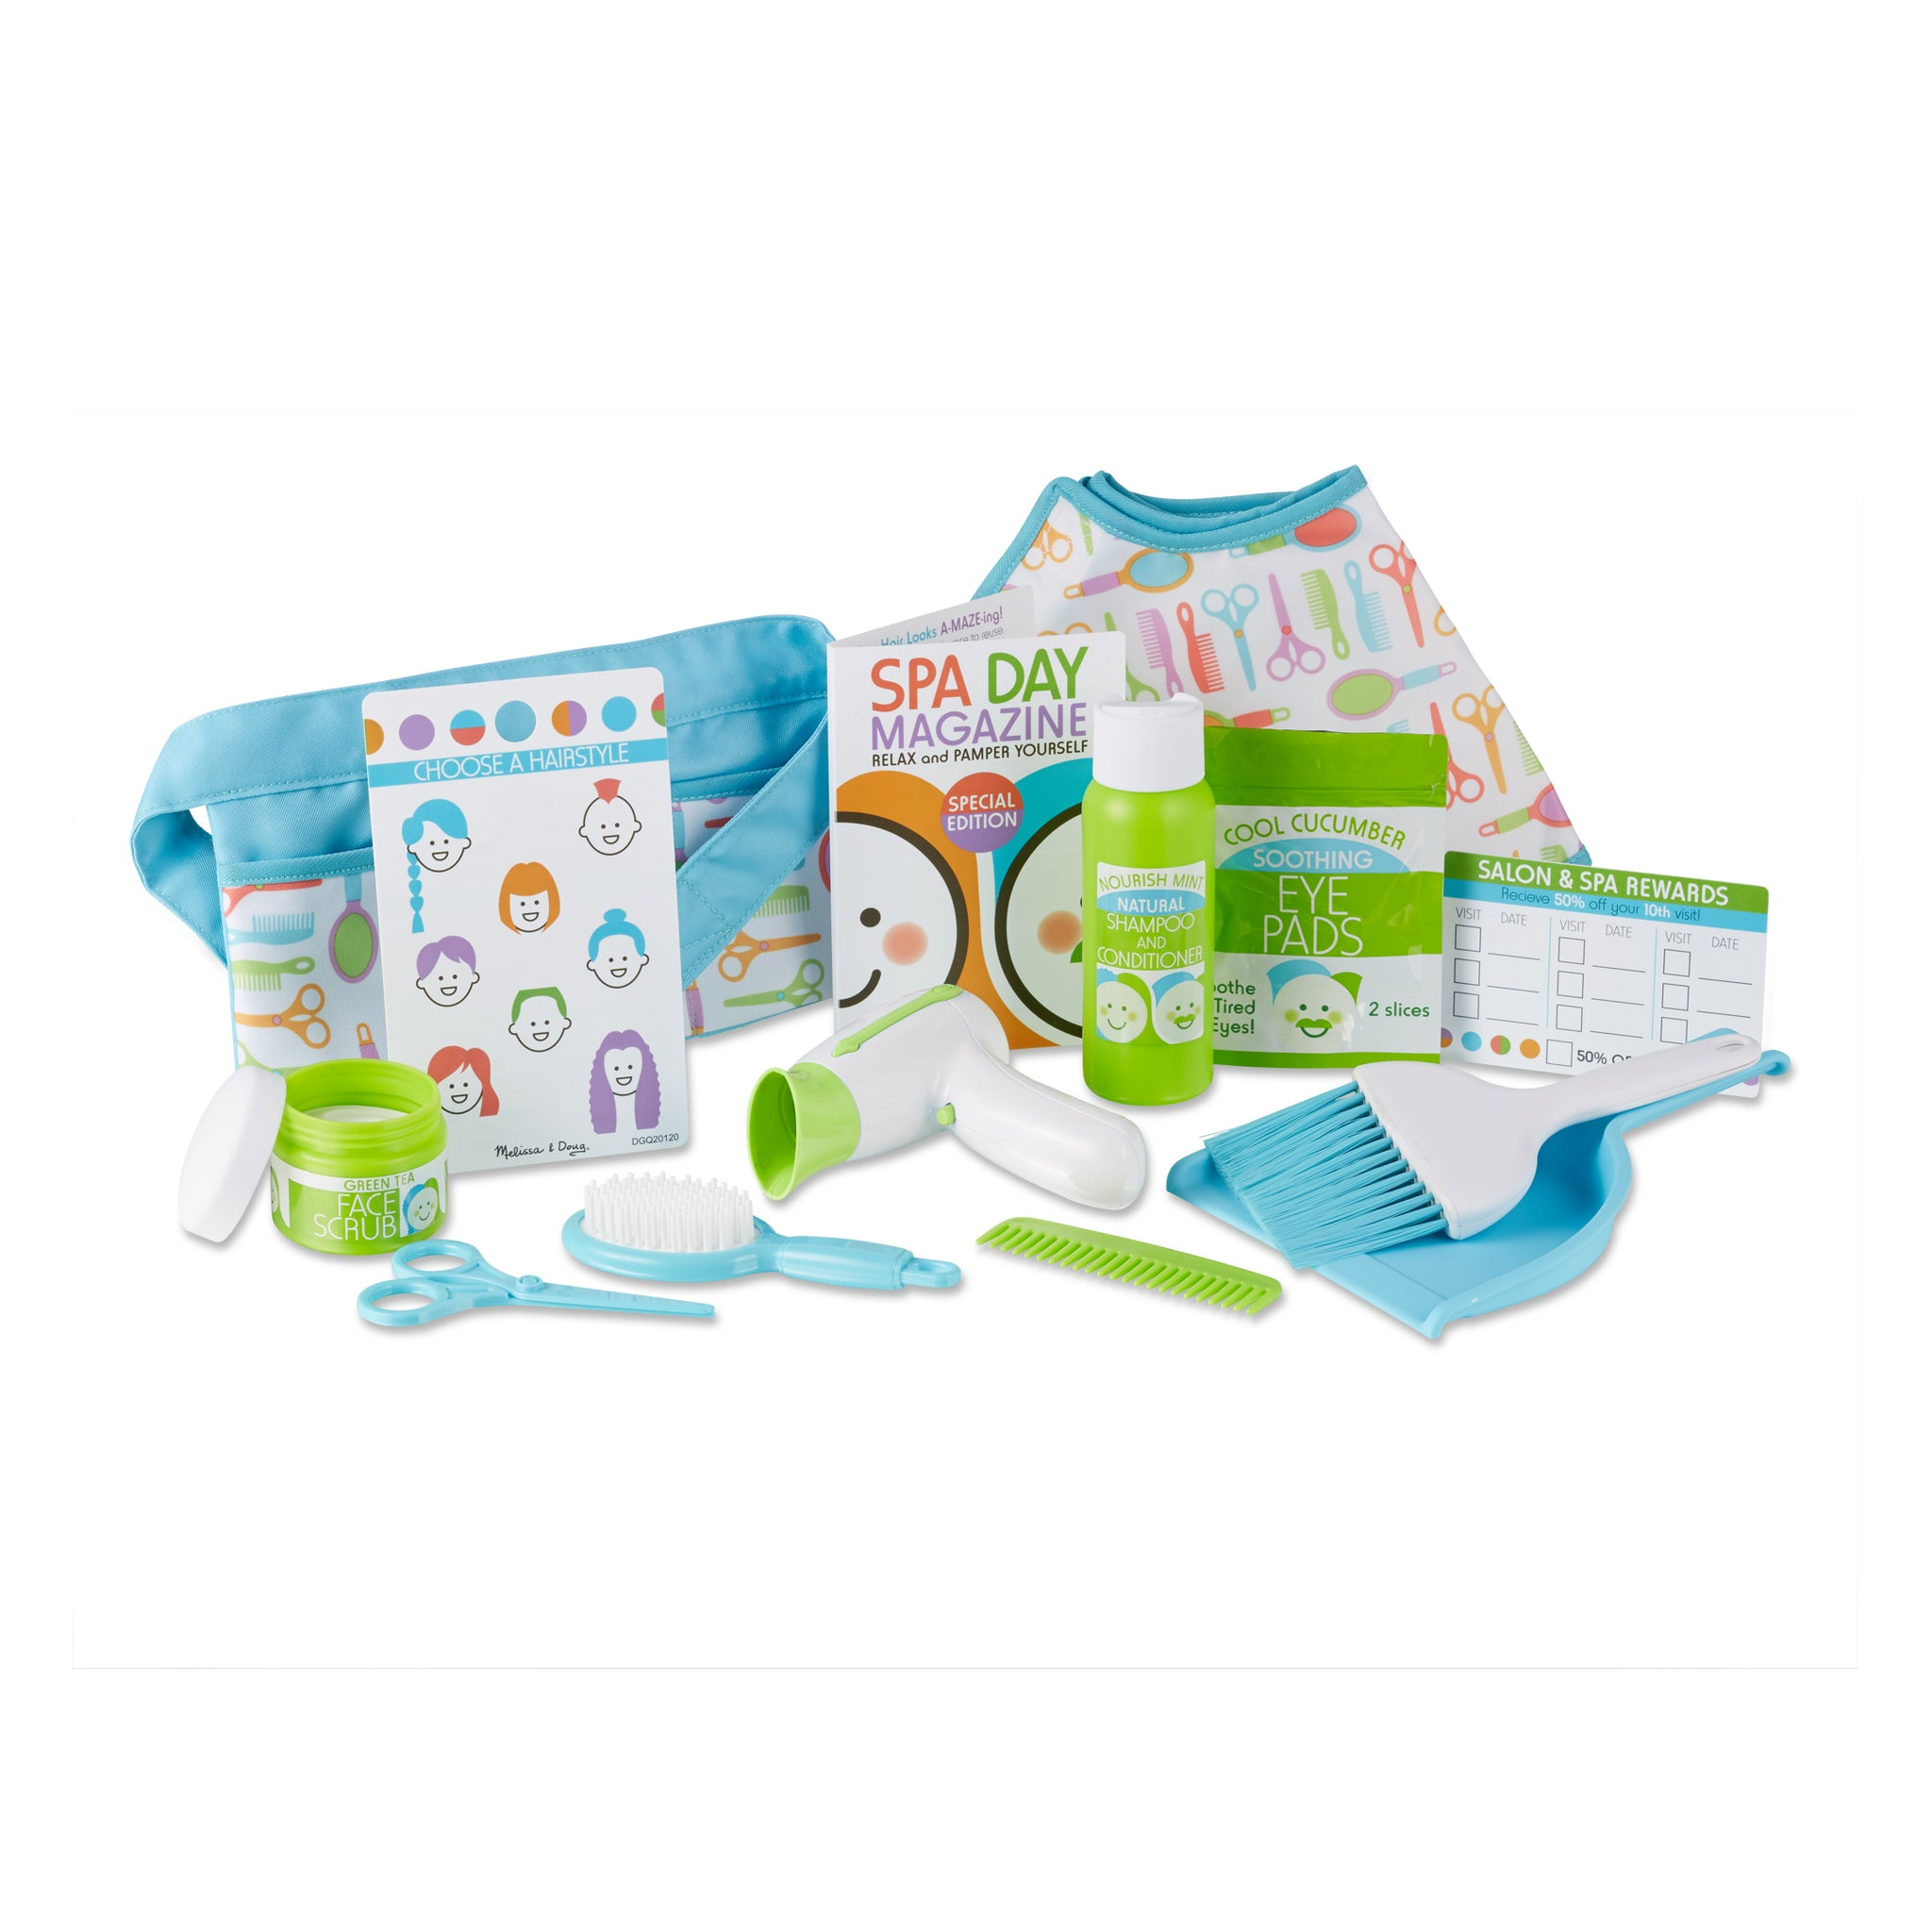 MELISSA & DOUG LOVE YOUR LOOK SALON & SPA